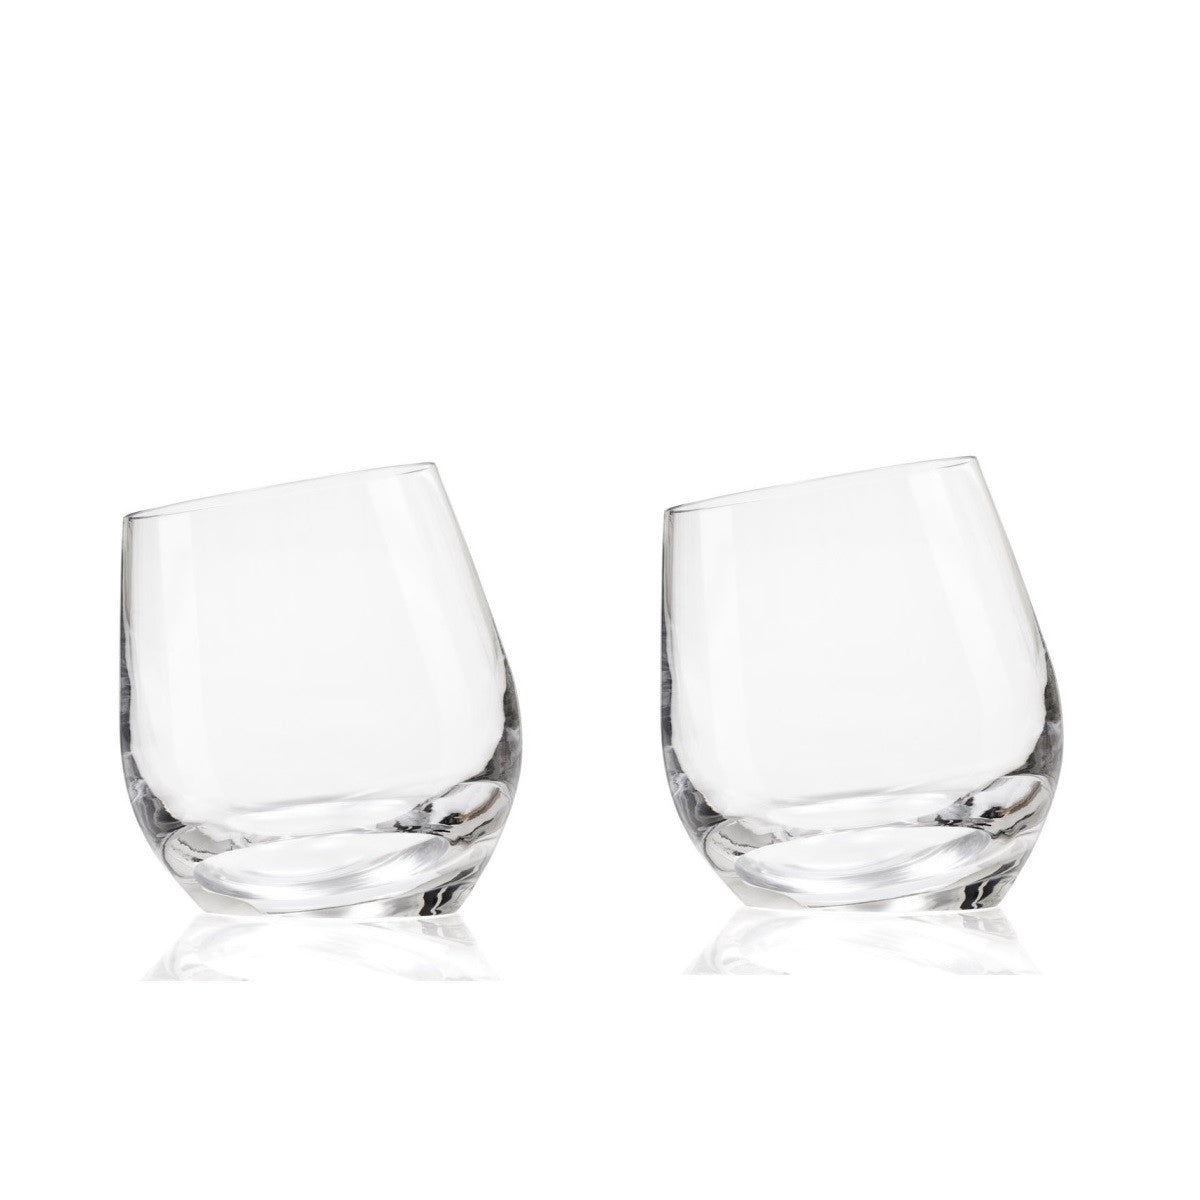 SHADOW red wine drinking glass (Set of 2)